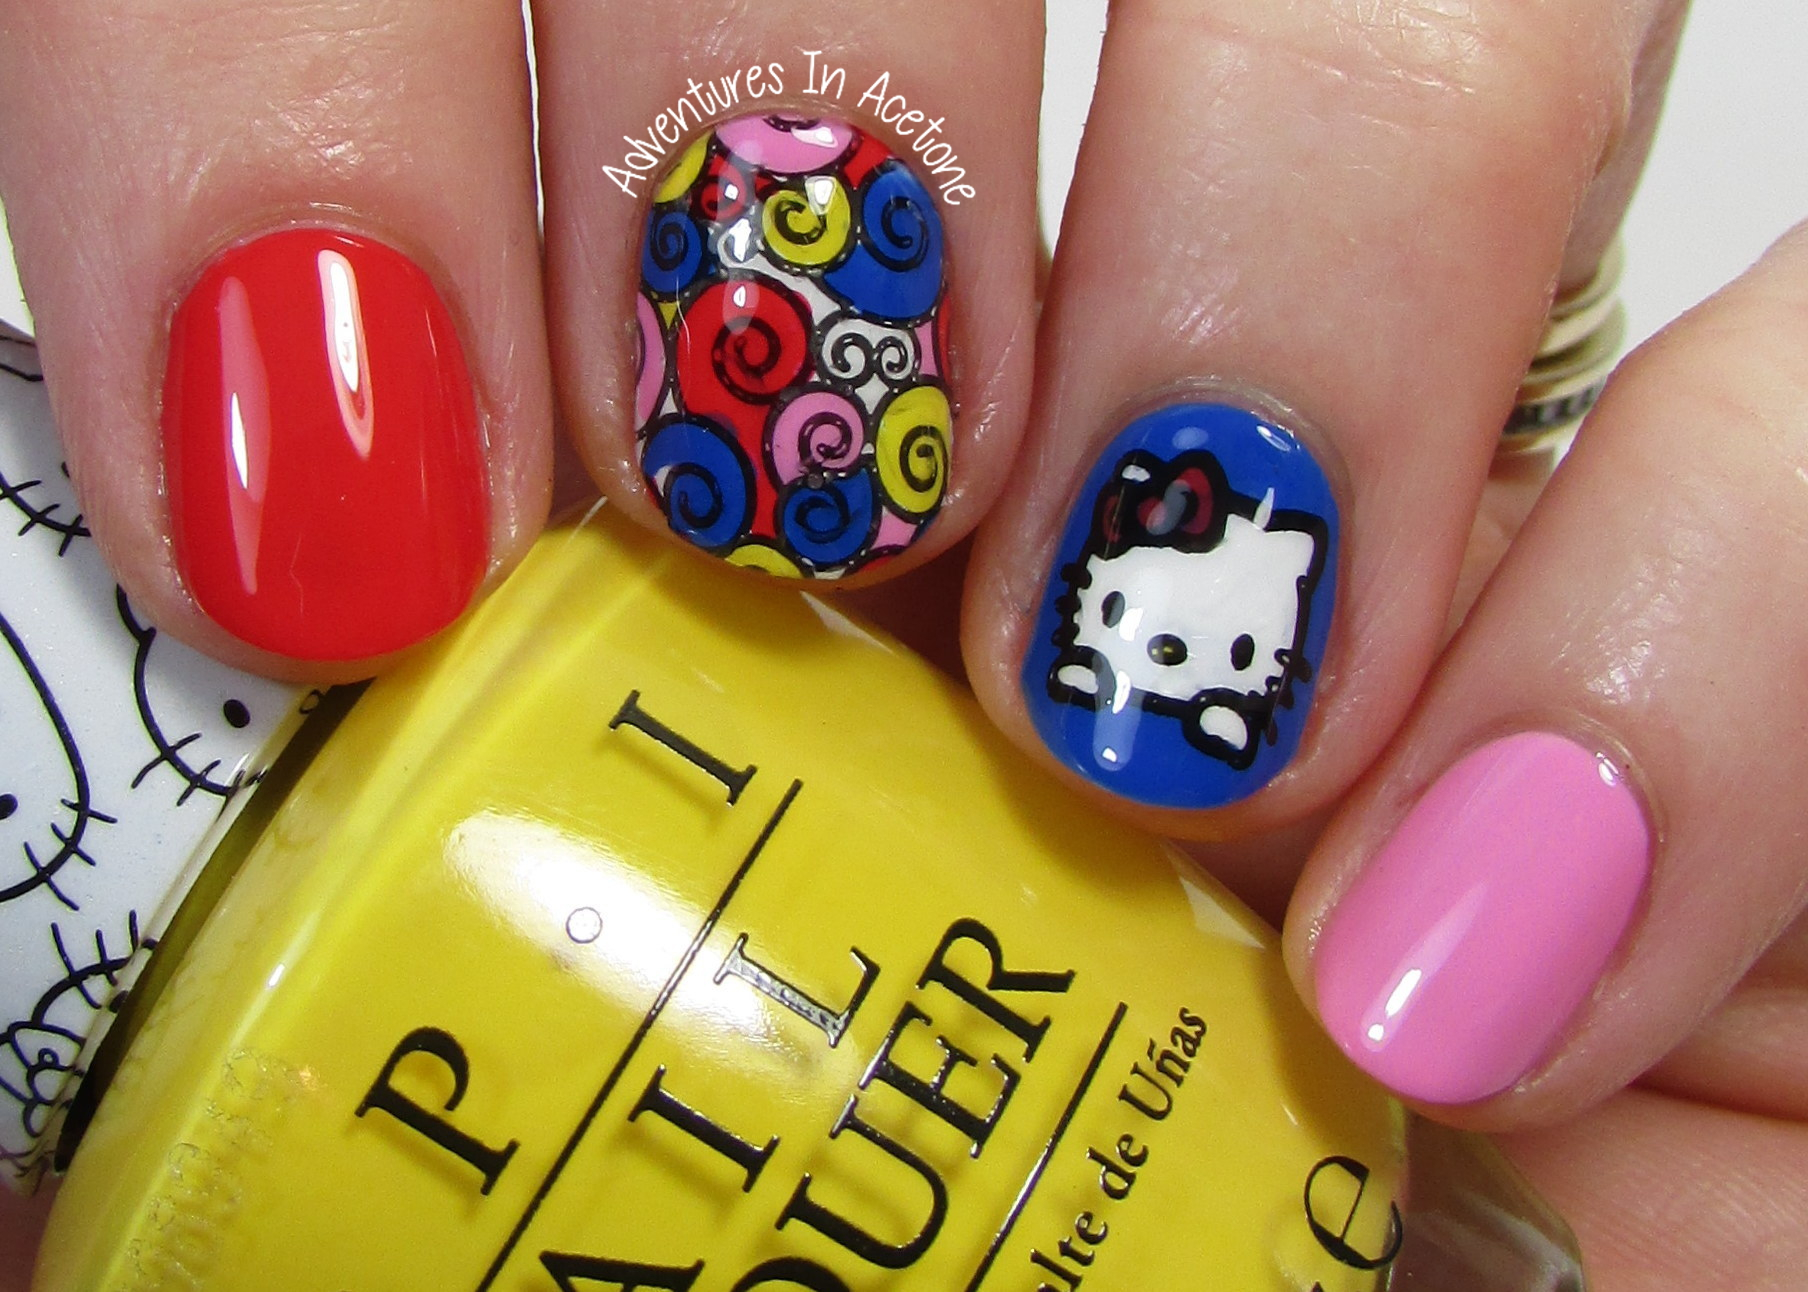 Opi Hello Kitty Nail Art Adventures In Acetone